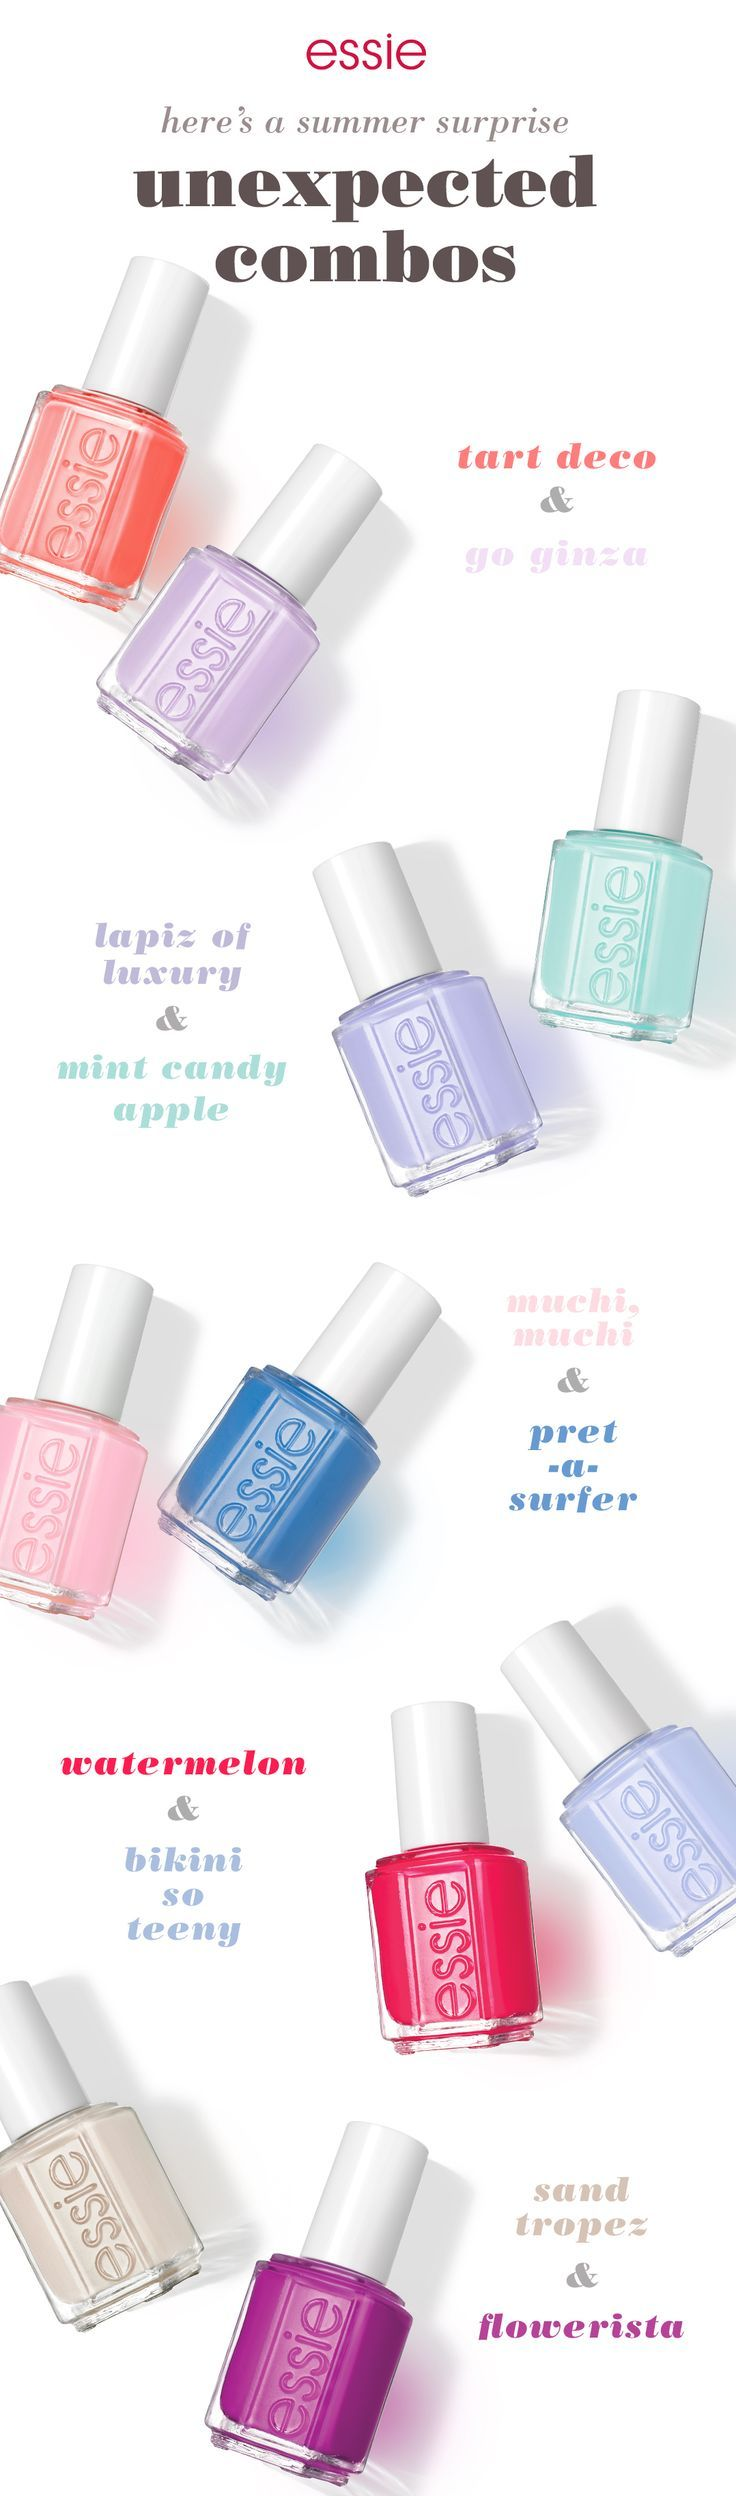 This summer surprise yourself with unique mani-pedi combos. For a creative summer look use a coral 'tart deco' and purple 'go ginza'. Keep people guessing with 'lapiz of luxury' and 'mint candy apple'. Catch summer off-guard with pink 'muchi, muchi' and blue 'pret-a-surfer'. Have fun in the sun with juicy red 'watermelon' and sparkling 'bikini so teeny'. Or turn heads with a neutral 'sand tropez' and plum 'flowerista'. Whatever essie nail polish you go with, it's